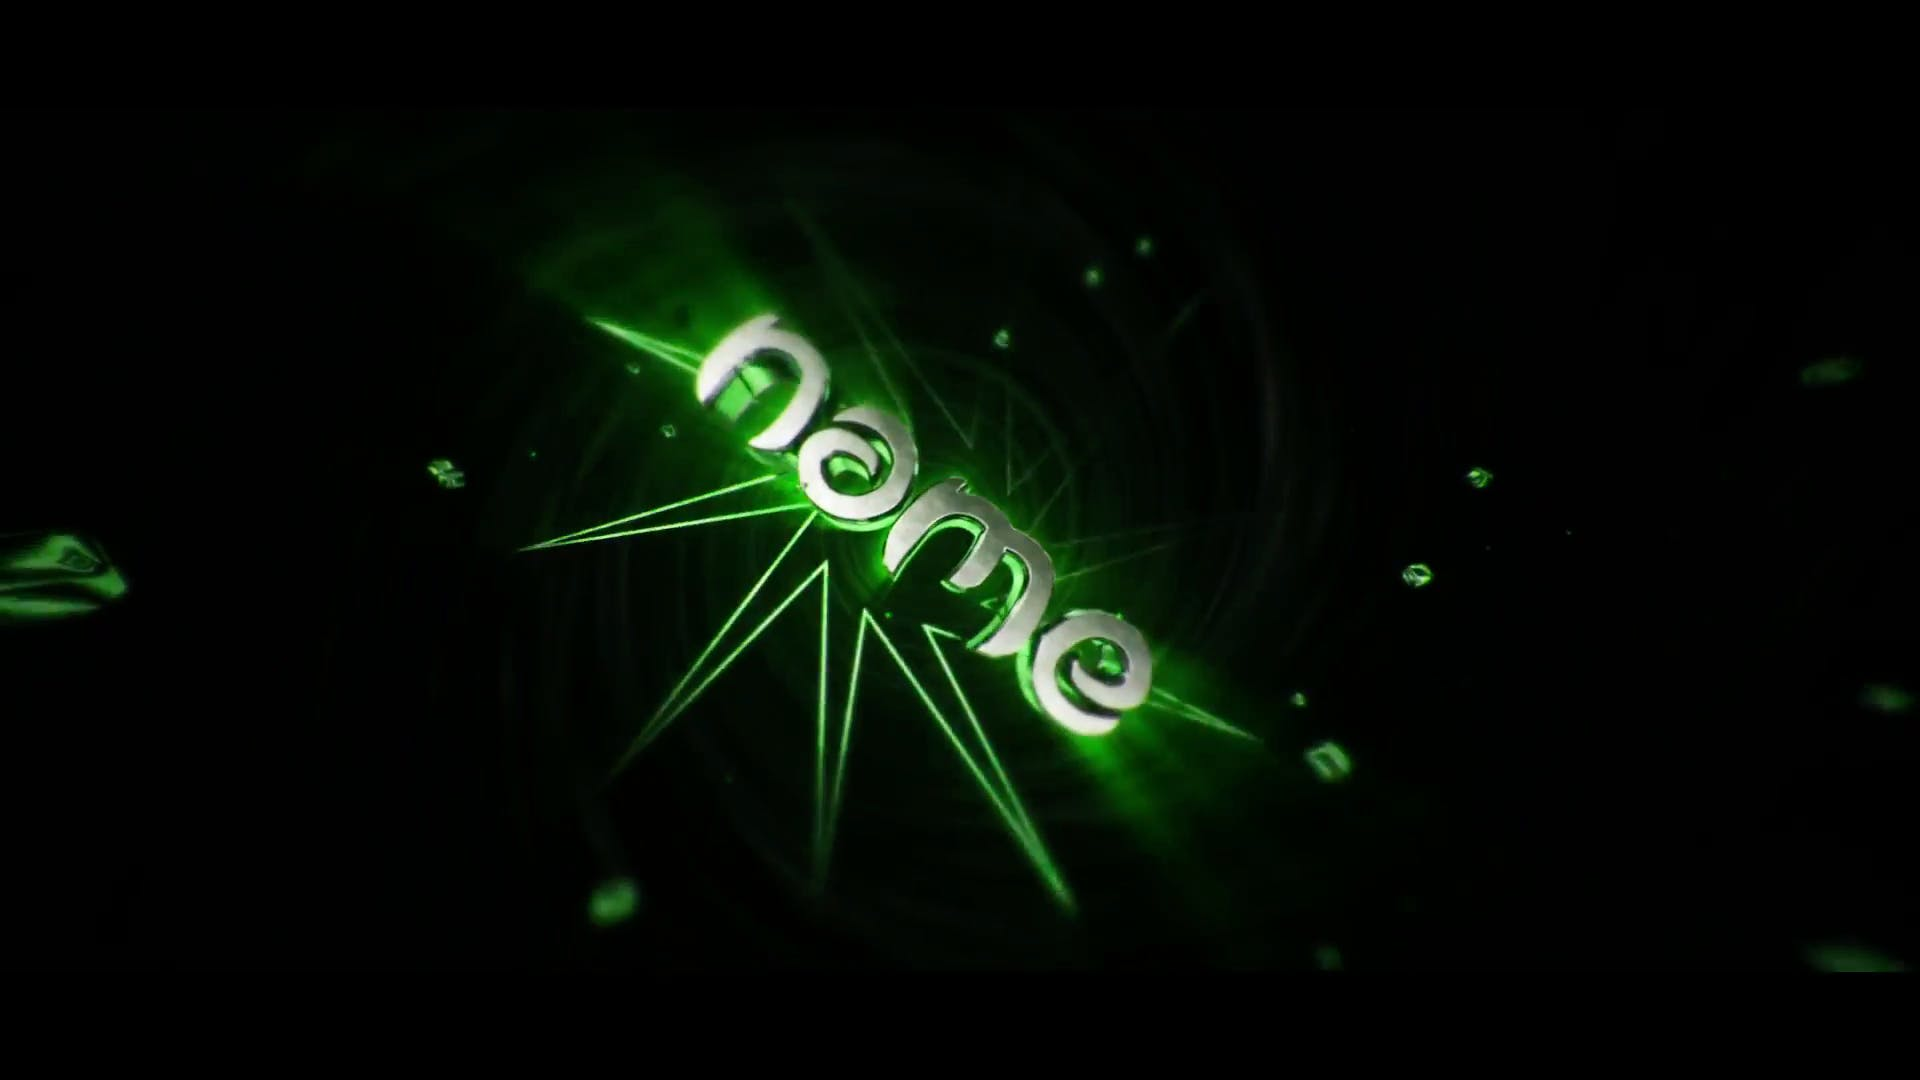 GreenBounce Intro Template Cinema 4D After Effects FREE DOWNLOAD